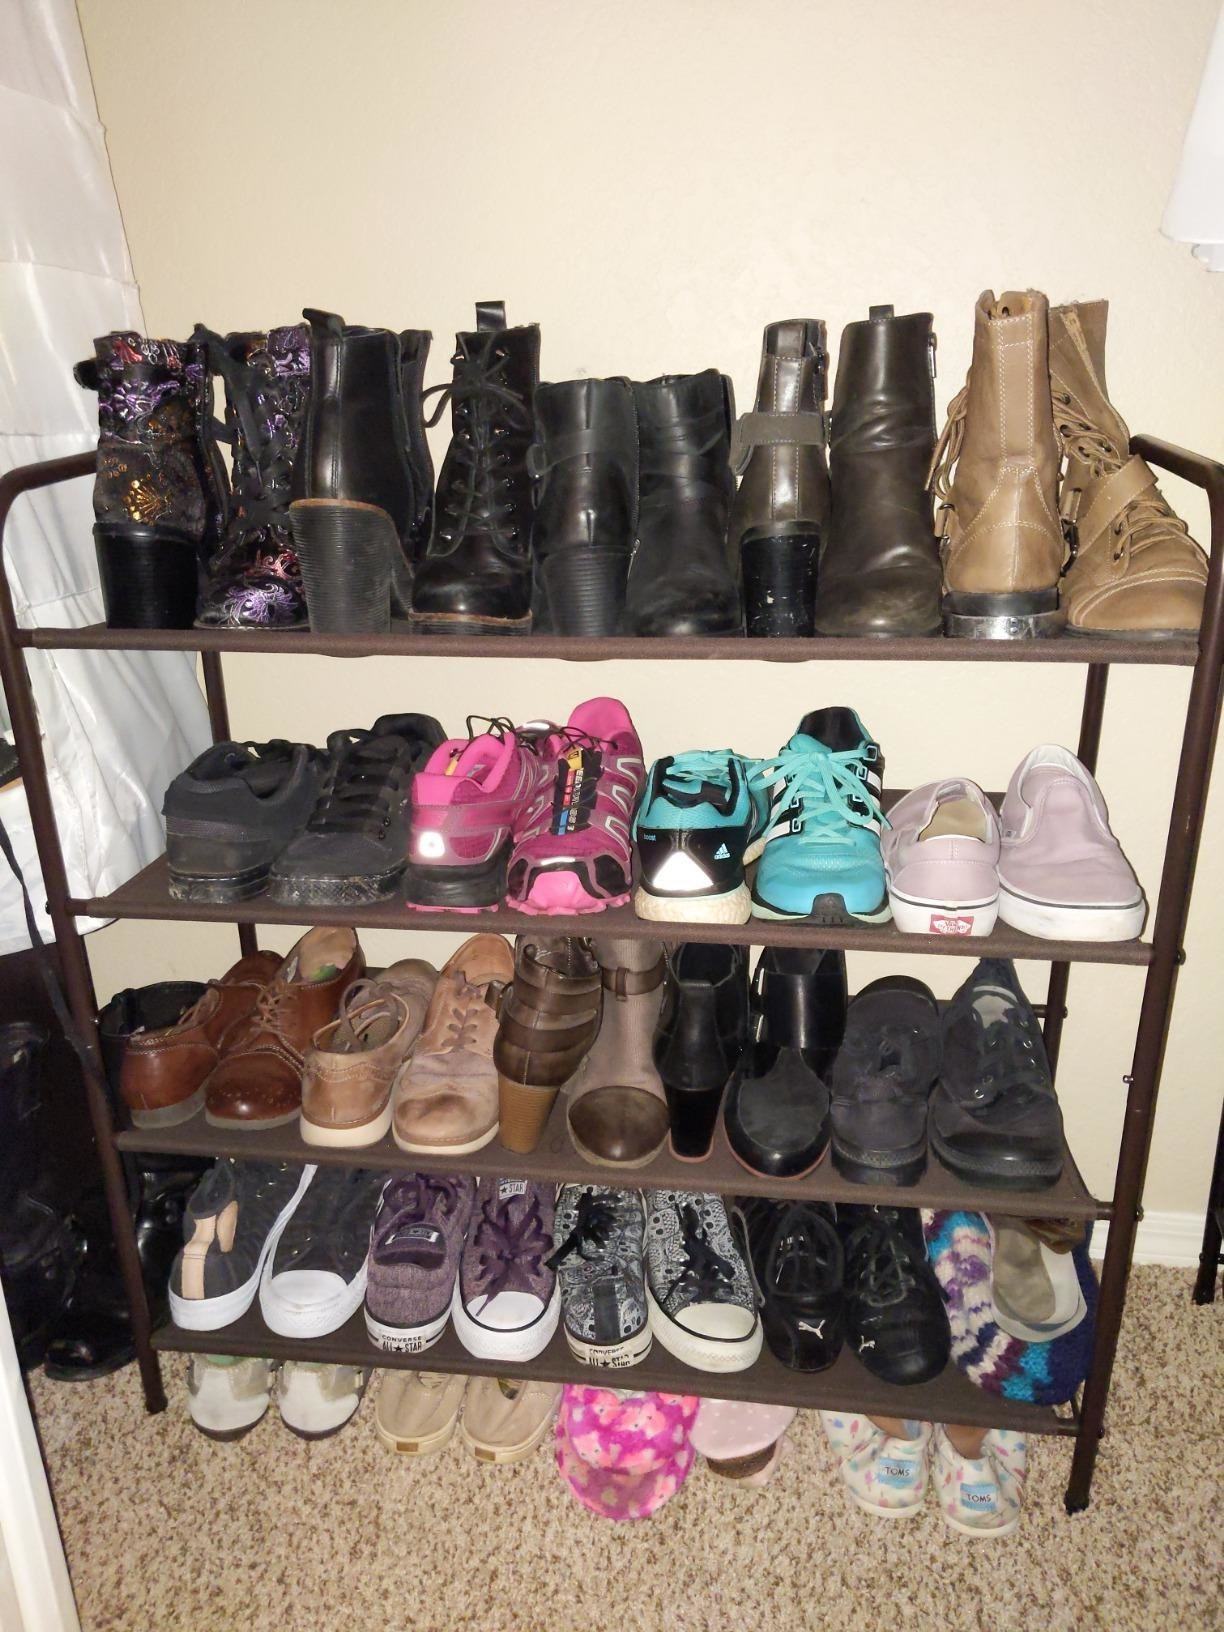 Reviewer uses the rack to organize boots, sneakers, and more footwear in their home